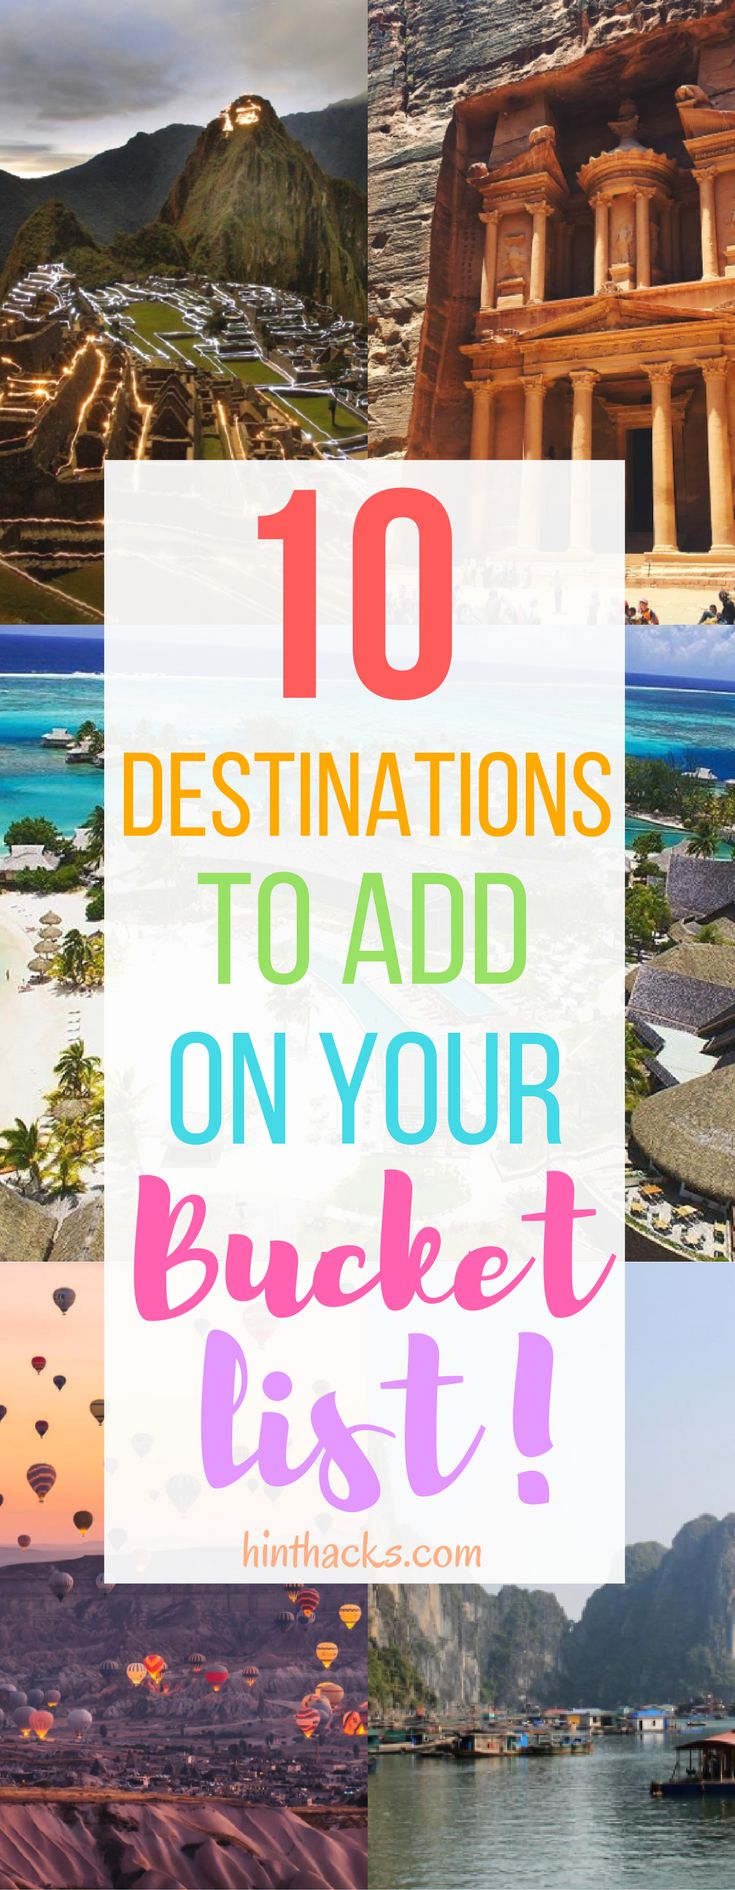 10 Destinations to add on your travel bucket list -travel checklist - international travel vacation trip -travel the world - adventures| bora bora great wall of china machu picchu african safari ma long bay culture bahamas travel map hinthacks